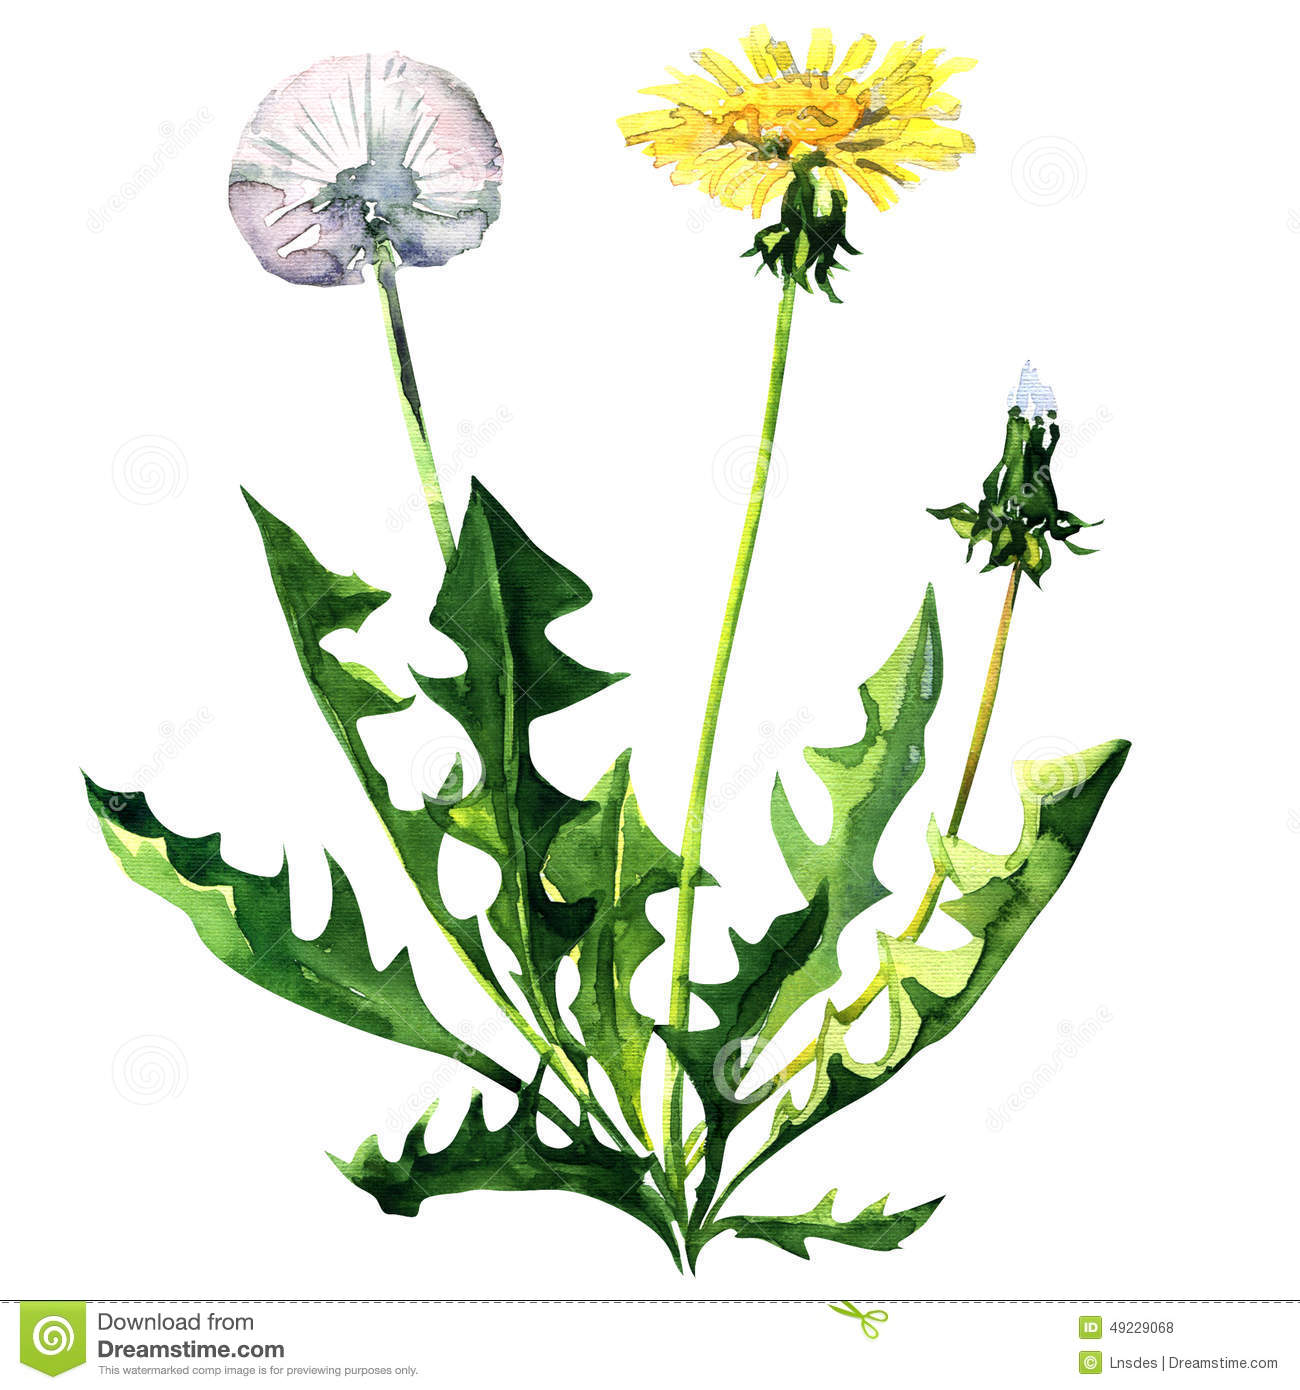 Dandelion flower isolated on a white background stock illustration dandelion flower isolated on a white background mightylinksfo